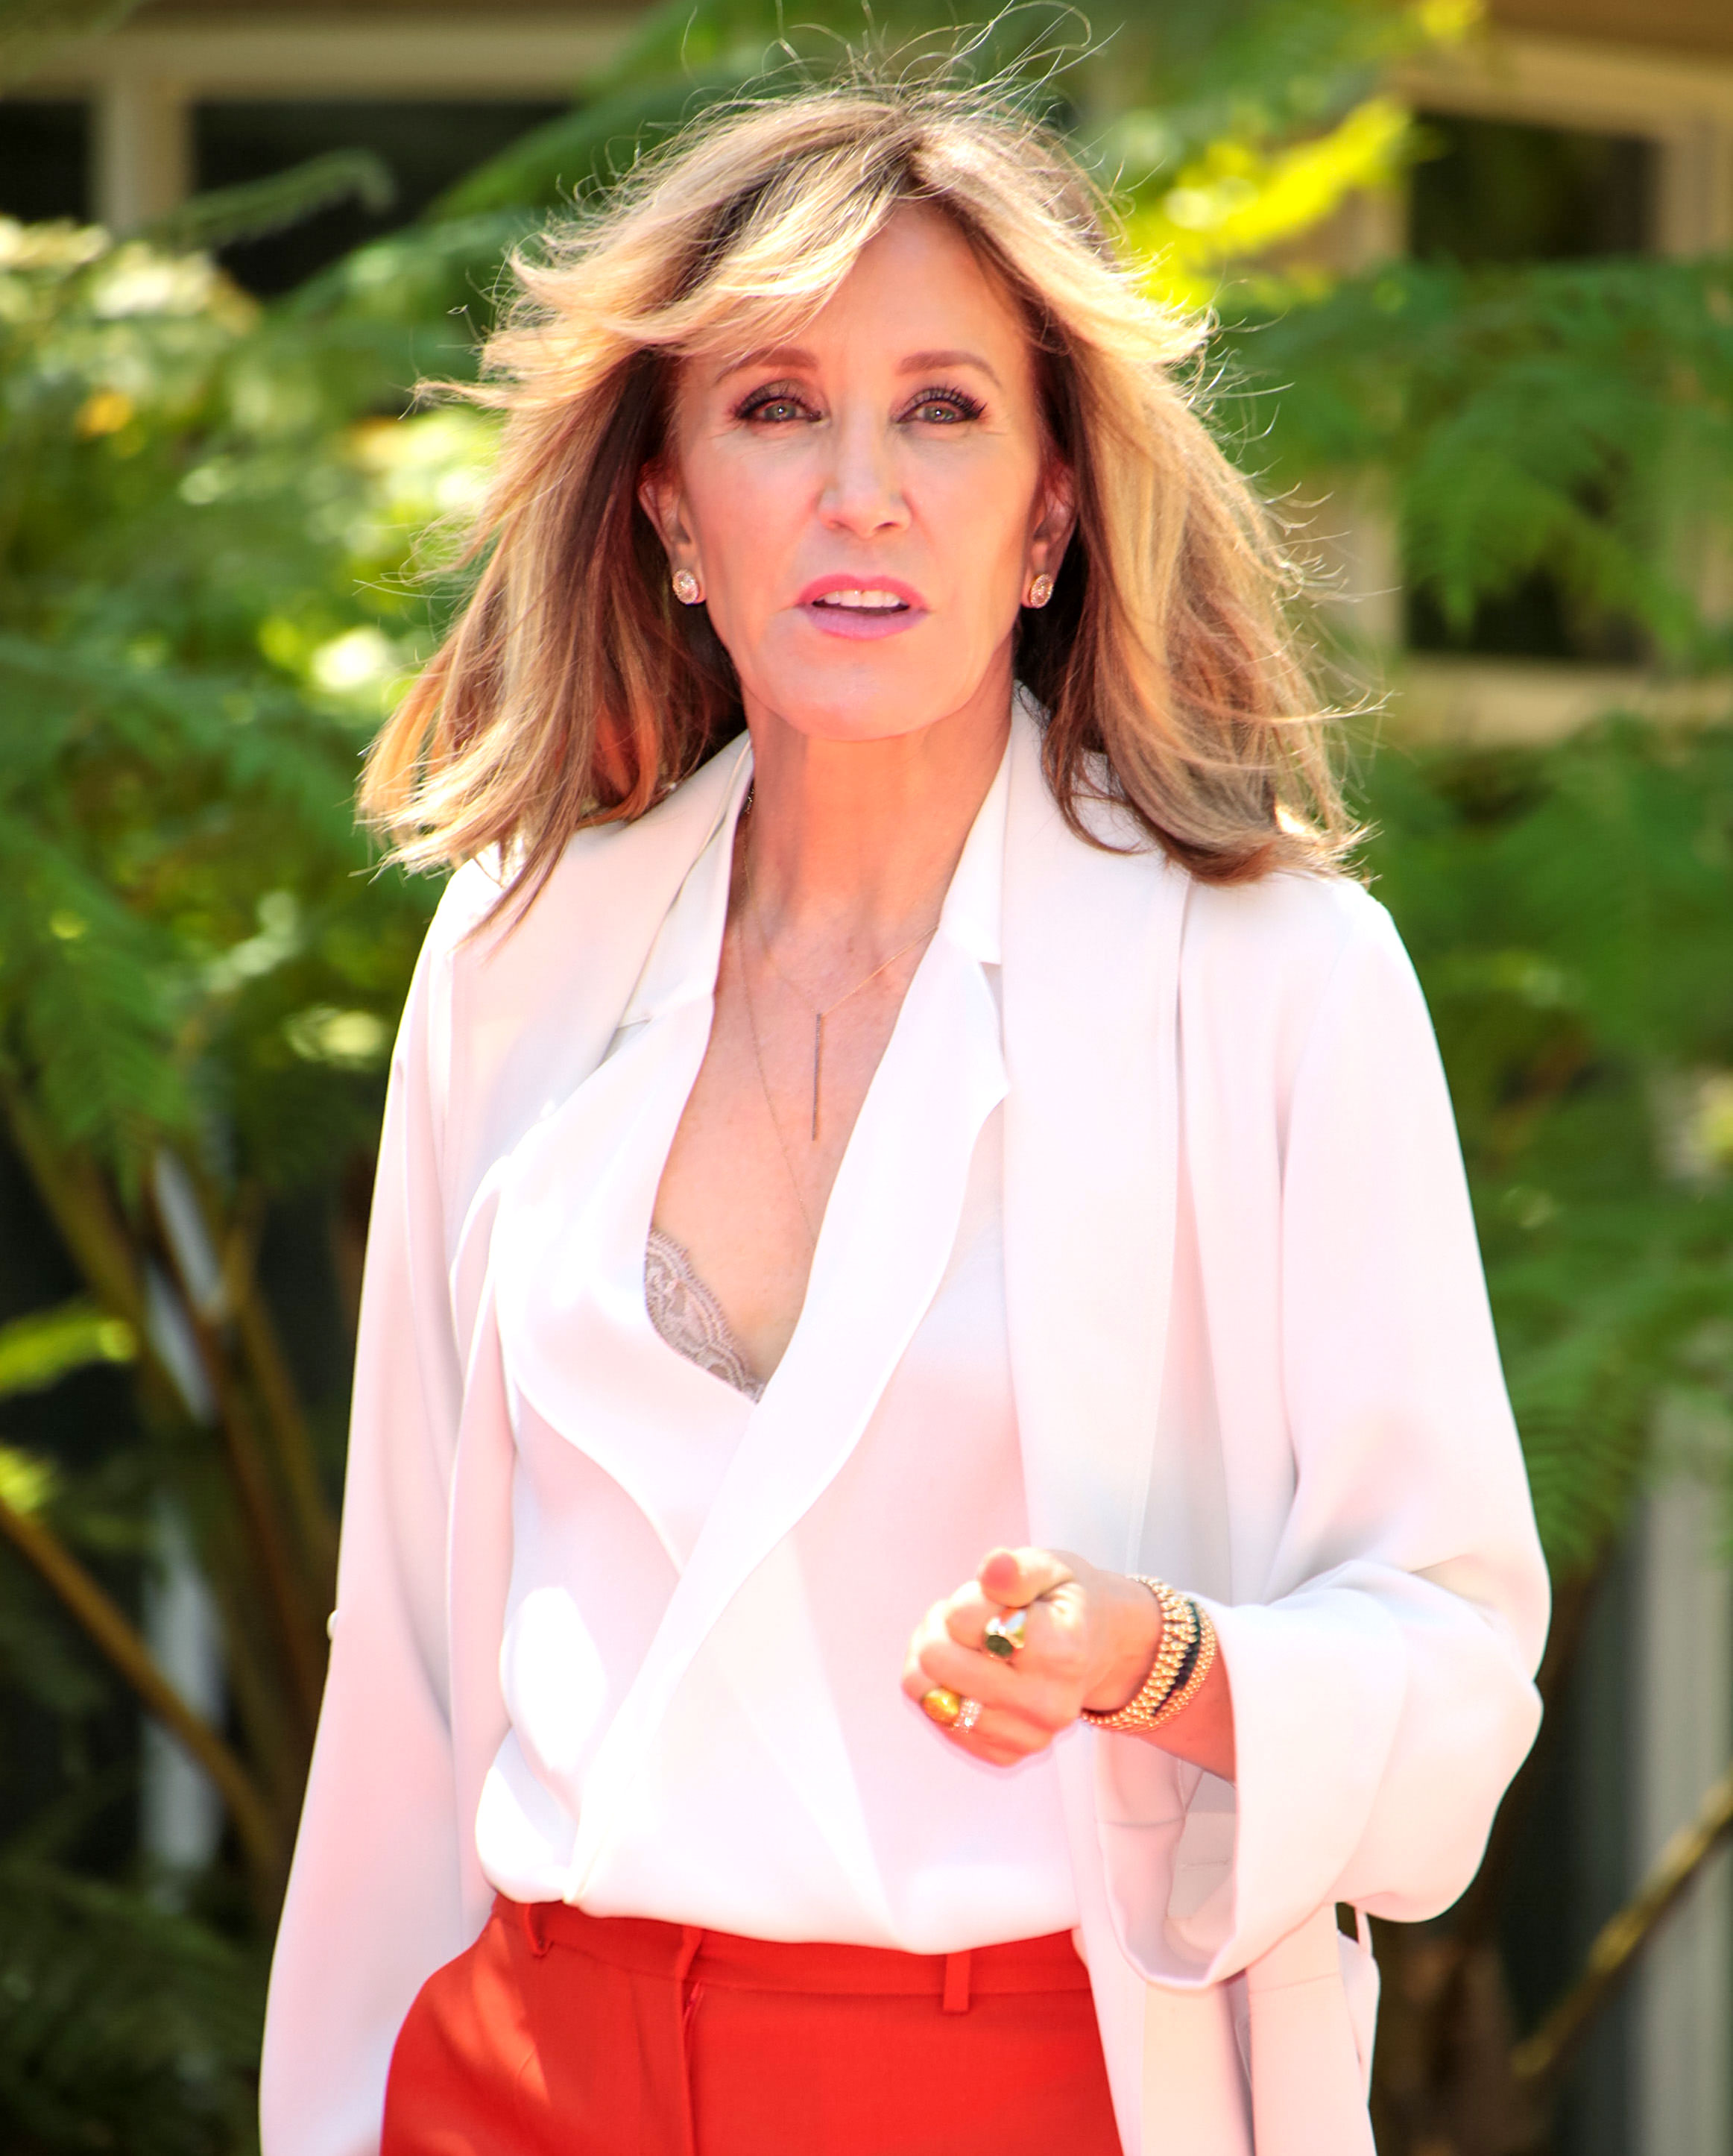 Felicity Huffman's 'Shame and Humiliation Are Unfathomable' - Felicity Huffman out and about on April 16, 2018 in Los Angeles, California.